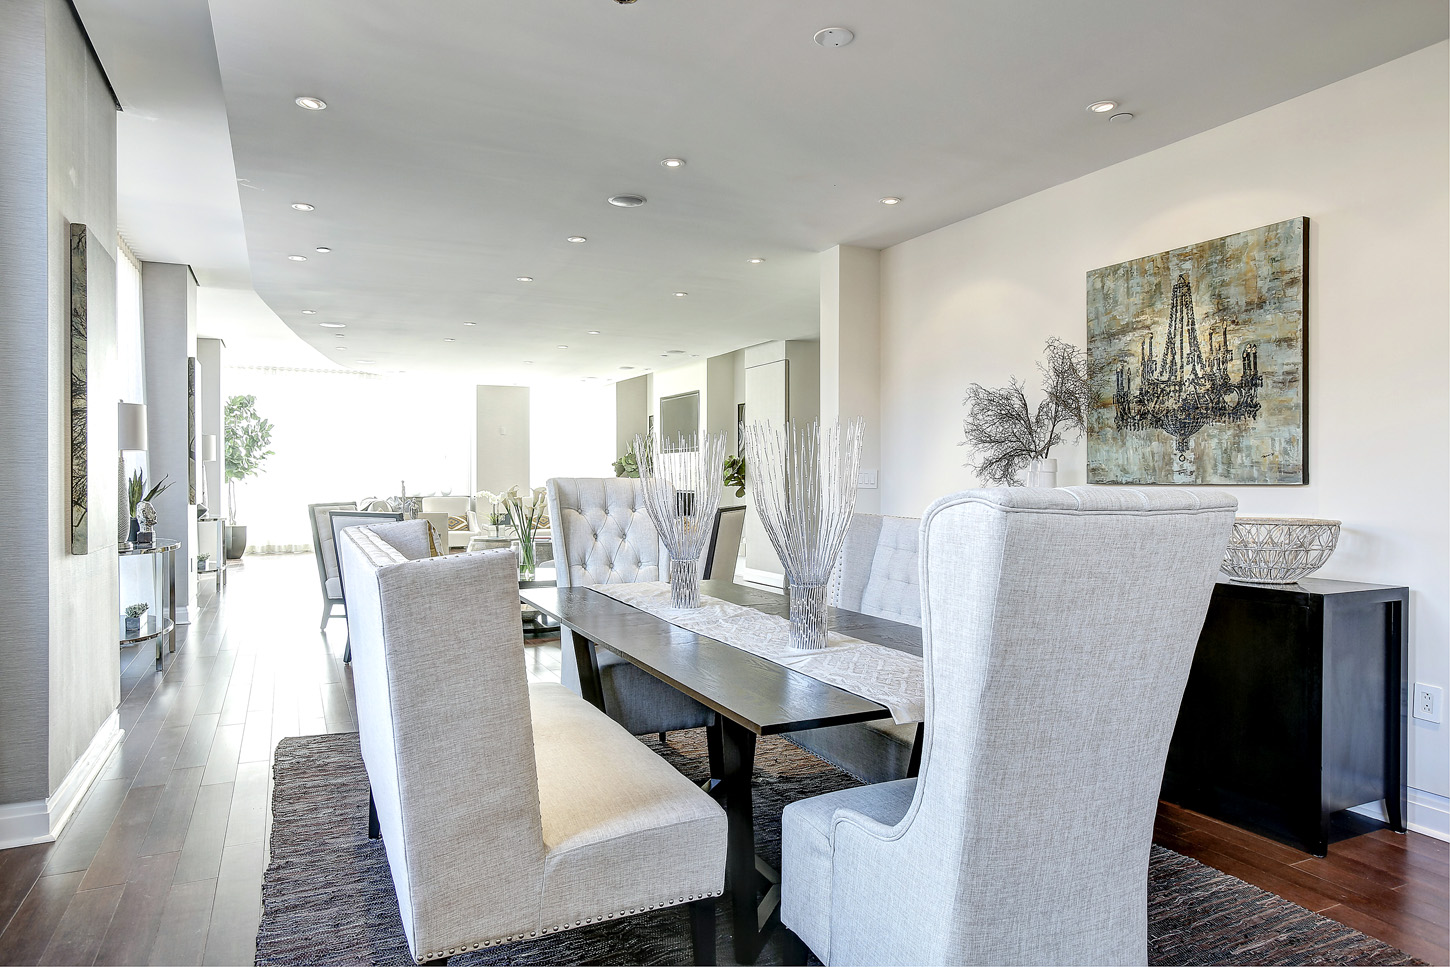 Dining Banquette Part - 39: We Love Banquette Seating! Part 3 Of Our Series On Decorating Pieces We Are  Loving Right Nowu2026